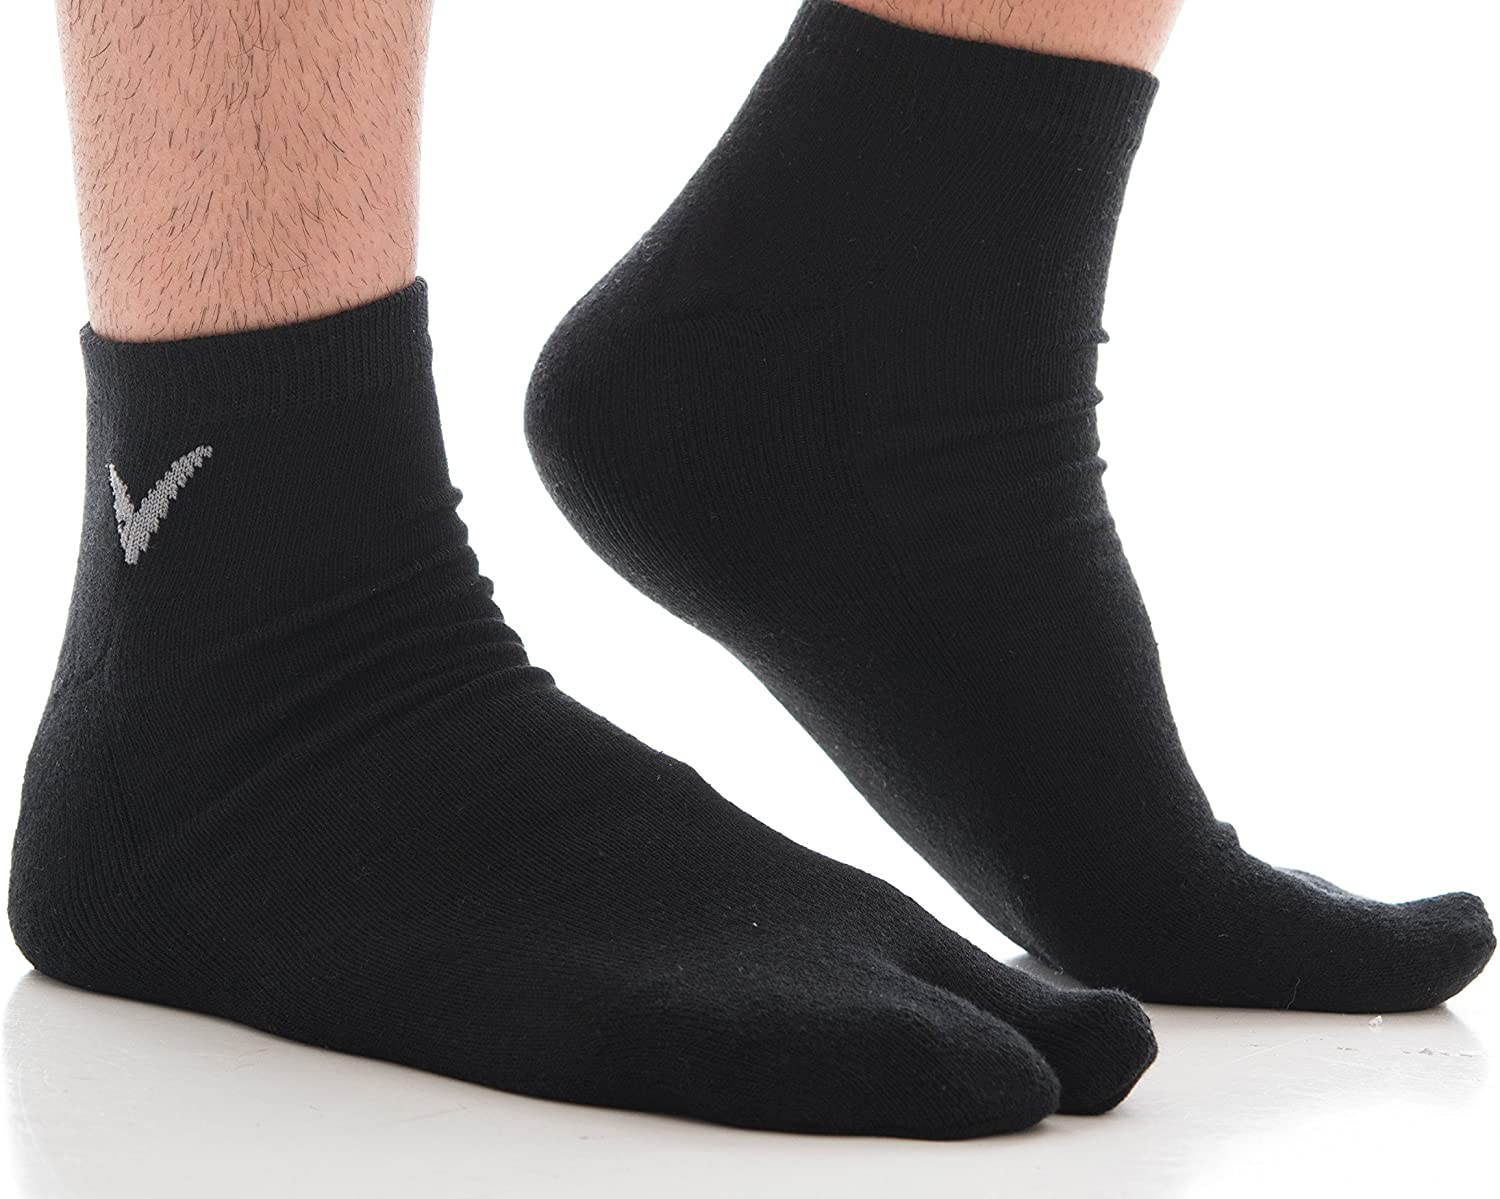 V-Toe Athletic Flip Flop Japanese Tabi Socks Men And Women Sports or Casual Thicker Cotton